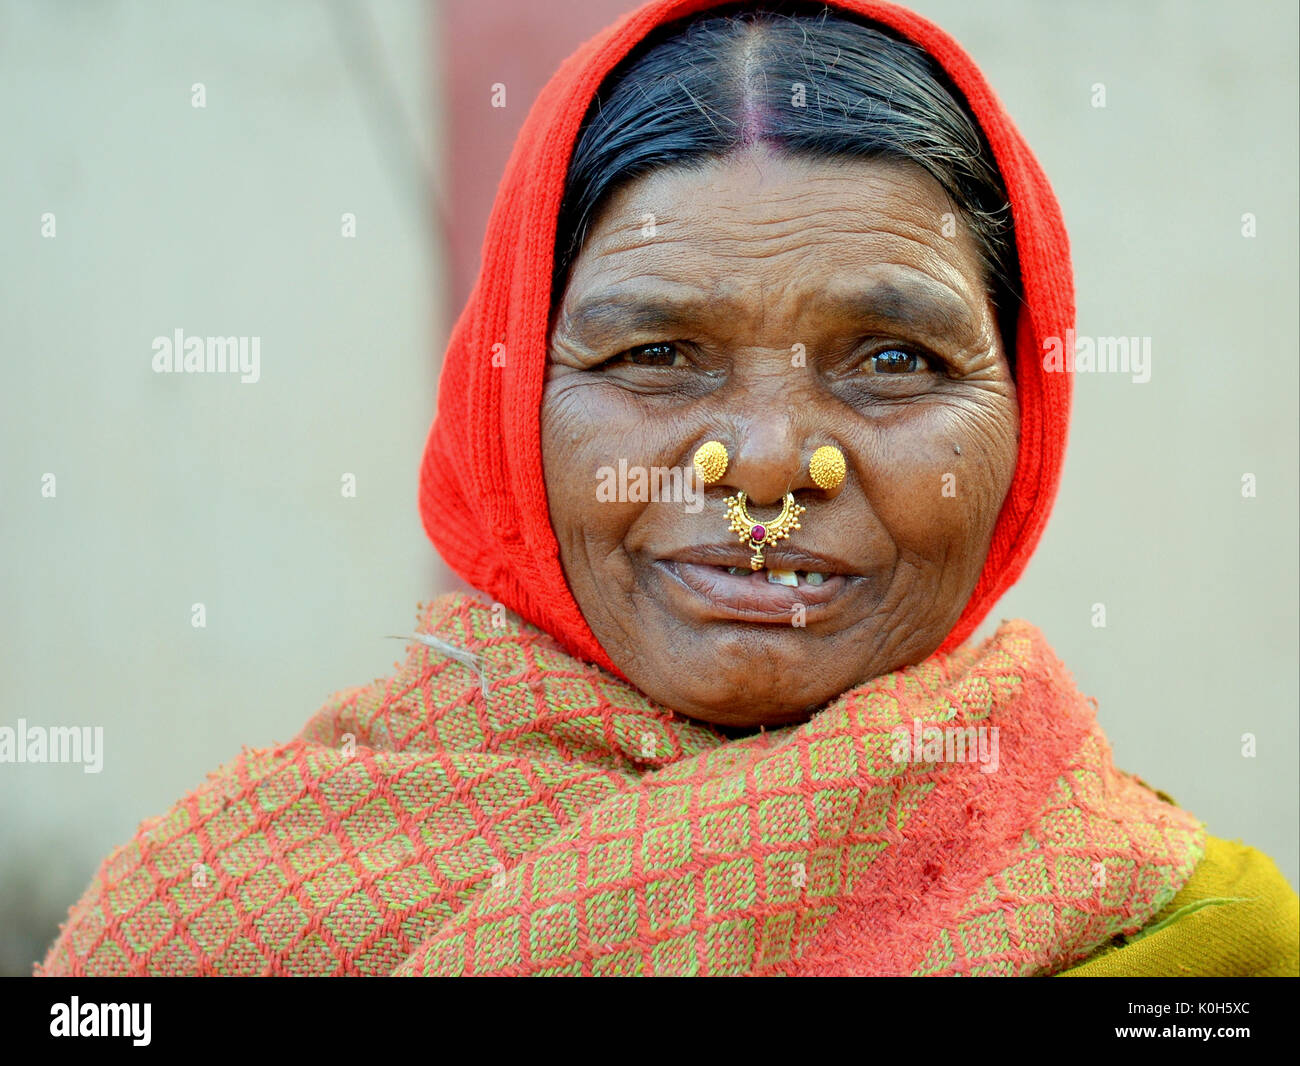 Elderly Indian Adivasi market woman with two golden nose studs and distinctive gold-and-gemstone nose jewellery, Stock Photo